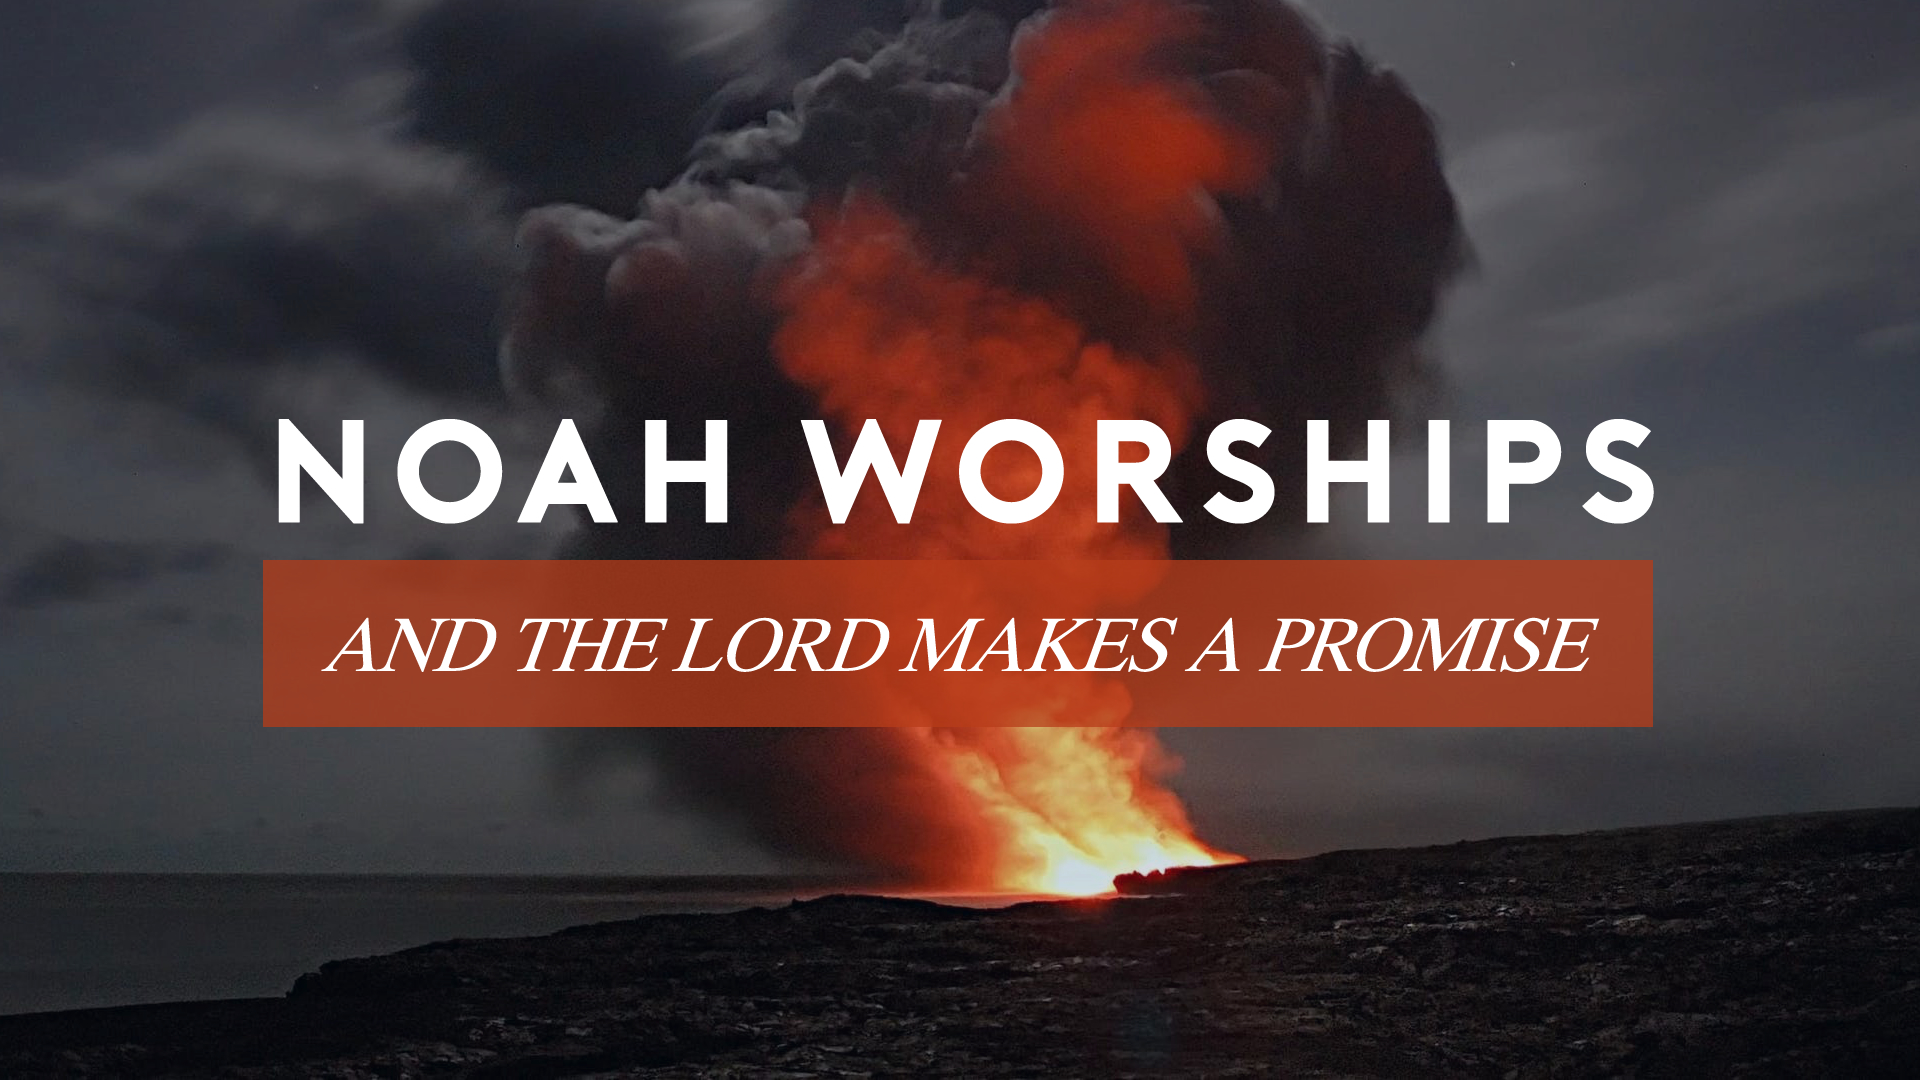 Noah Worships and the Lord Makes a Promise.jpg